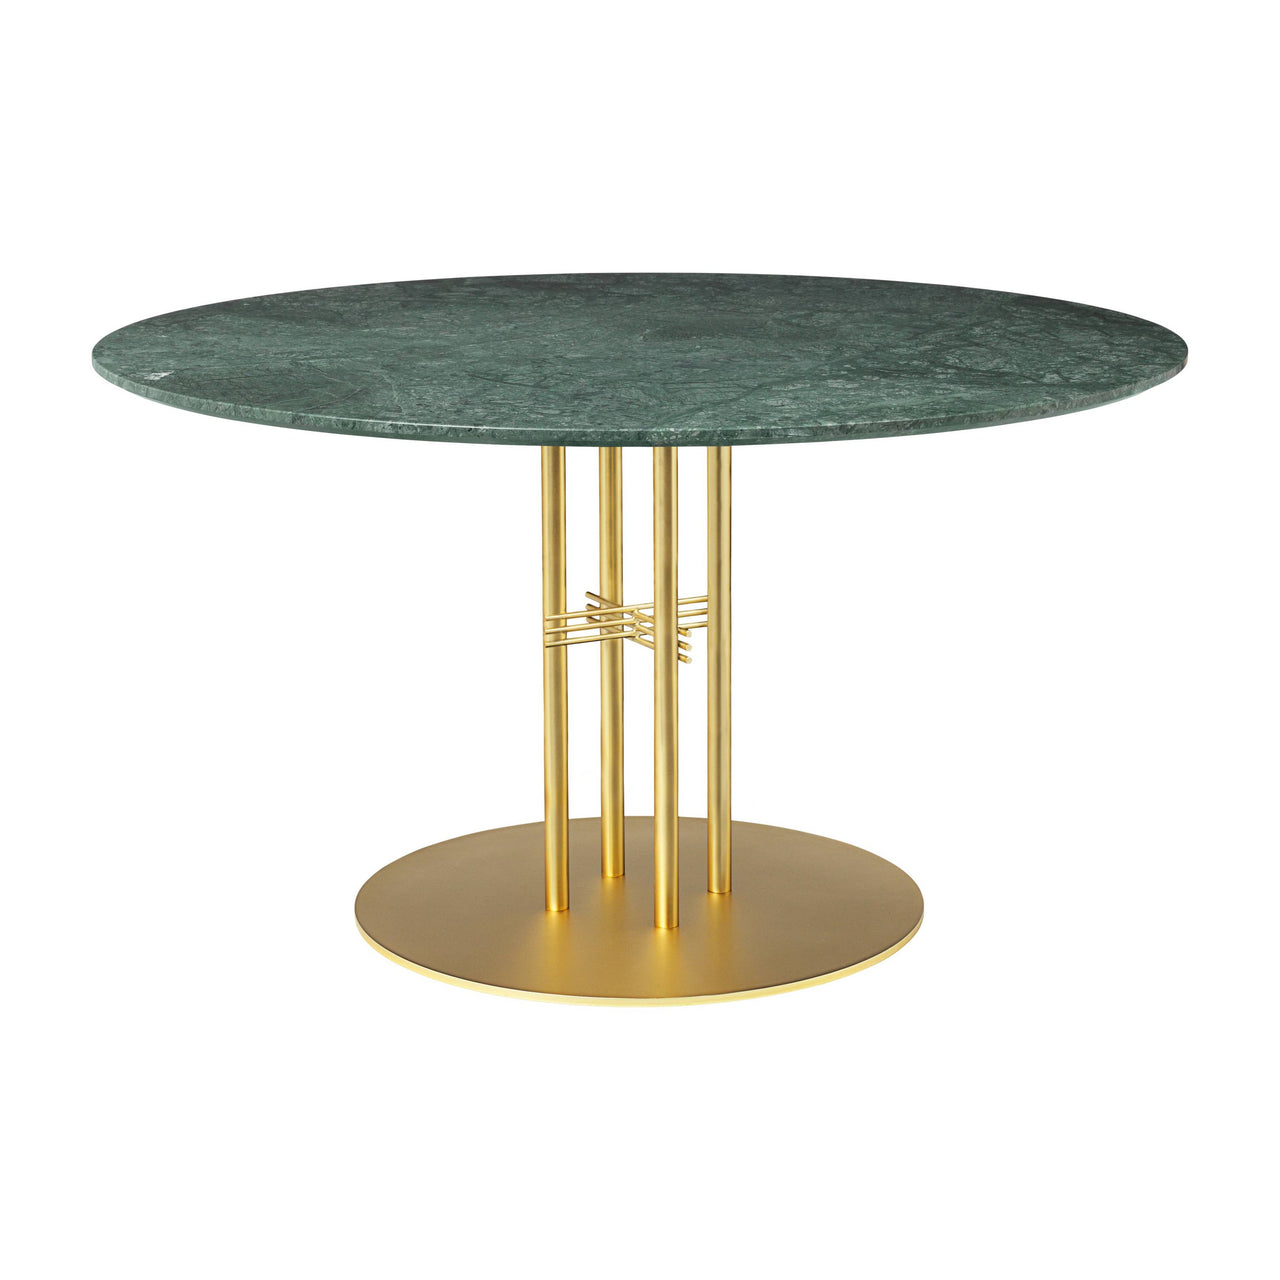 TS Column Dining Table: Large + Brass Base + Green Gautemala Marble